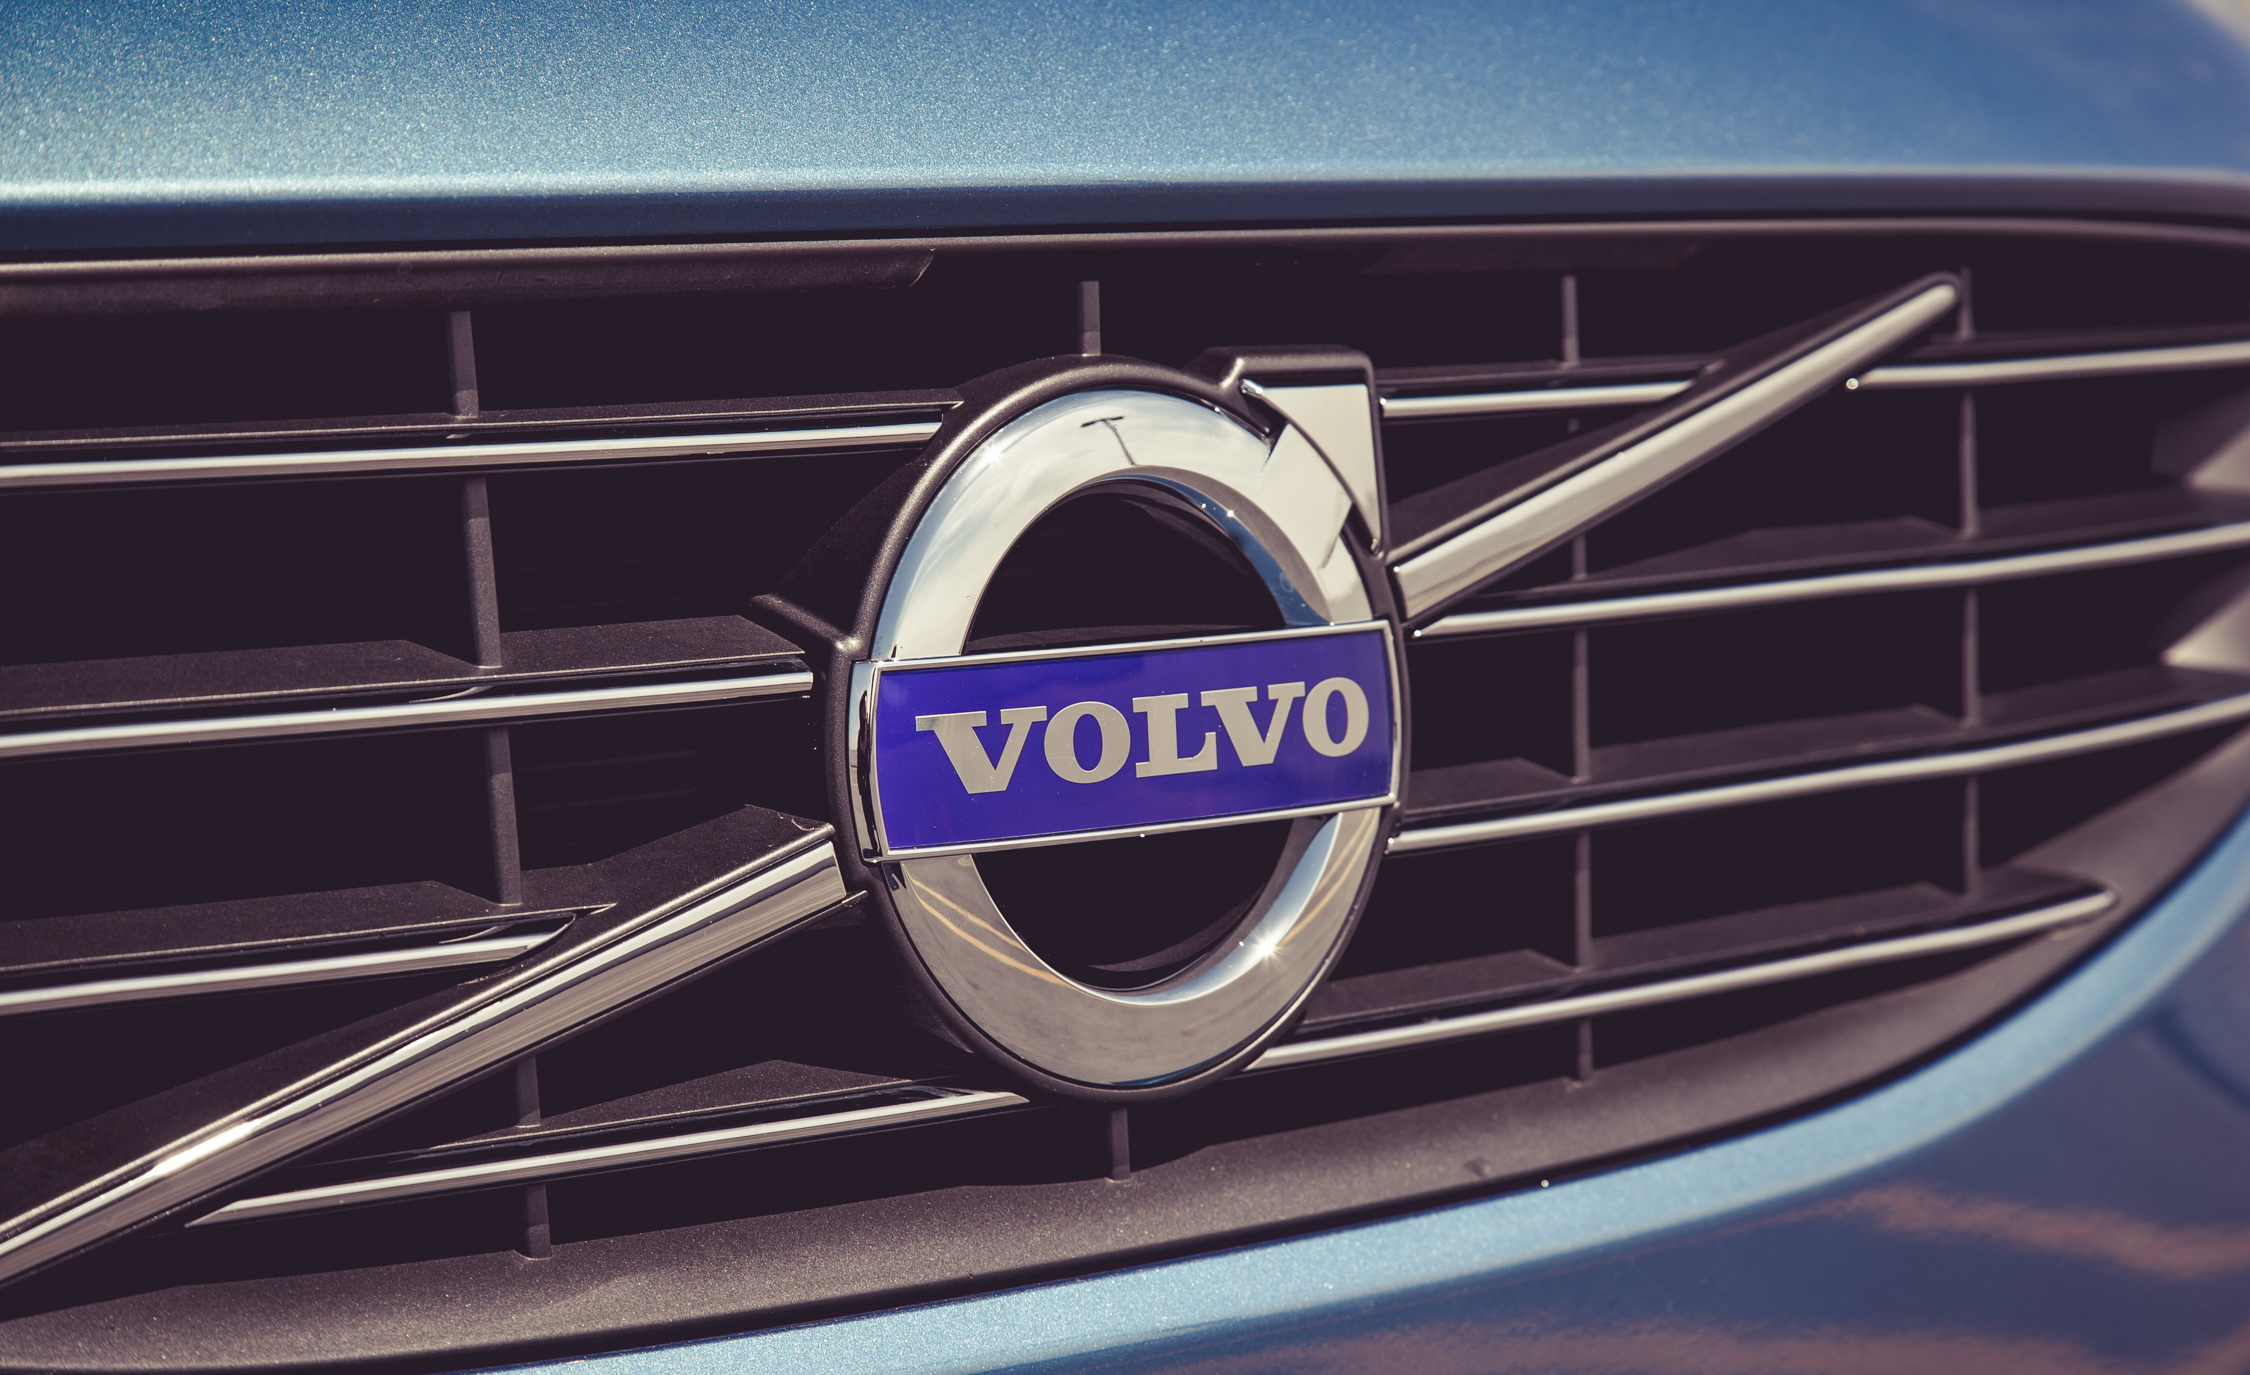 2015 Volvo V60 Grille And Badge (Photo 11 of 38)